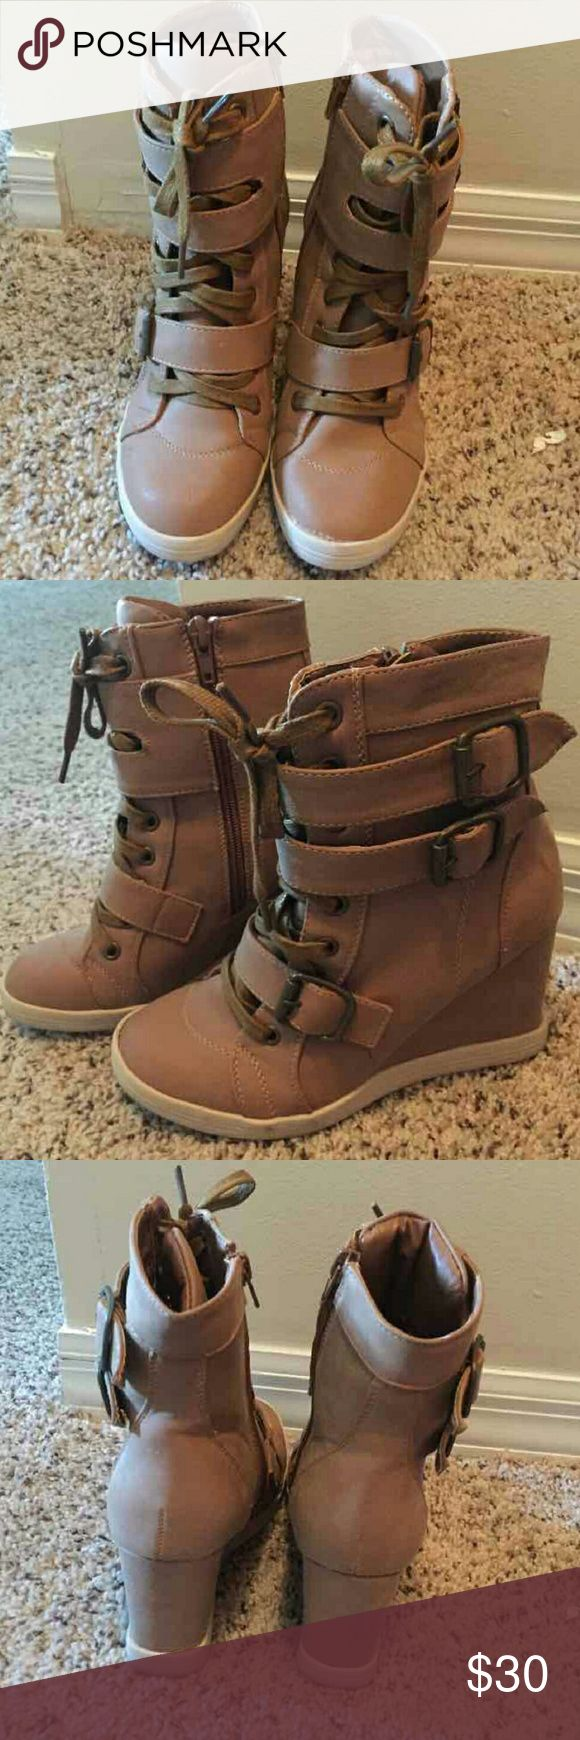 EVERYTHING MUST GO SALE!!! Fashion Wedge Sneakers Camel in color...very comfortable...only worn once Shoes Sneakers